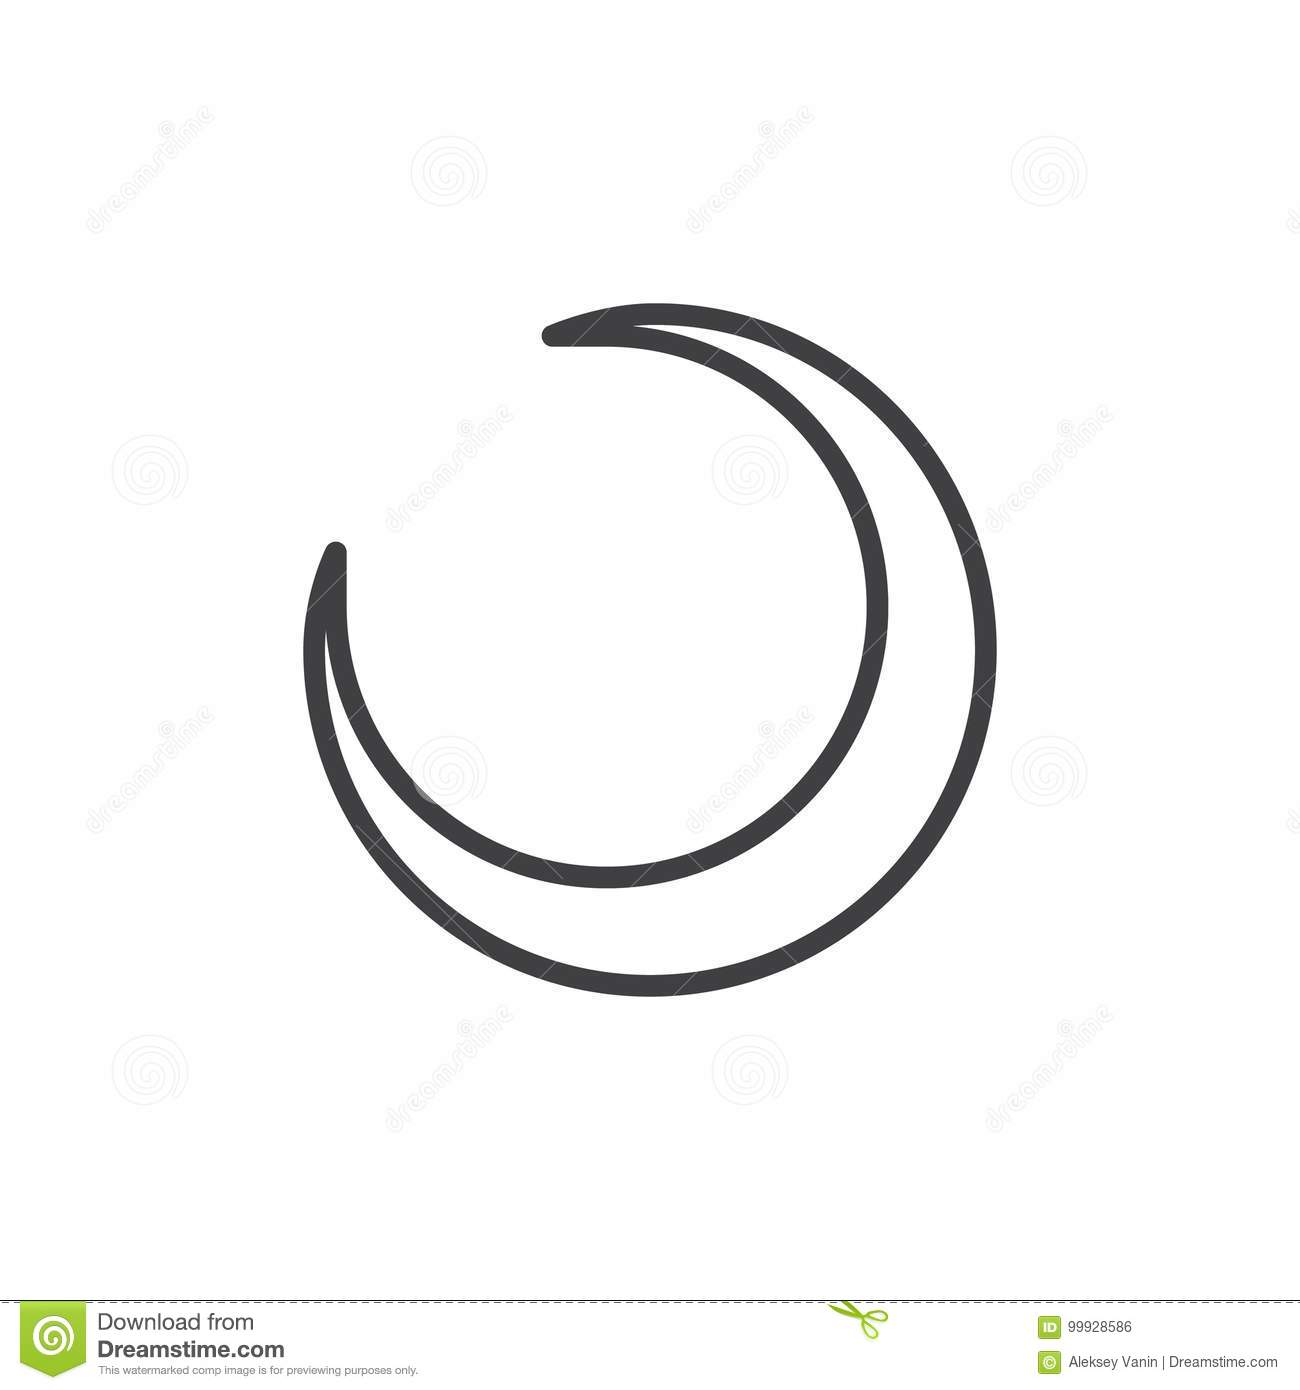 crescent moon line icon stock vector illustration of vector 99928586 https www dreamstime com crescent moon line icon crescent moon line icon outline vector sign linear style pictogram isolated white astrology symbol logo image99928586